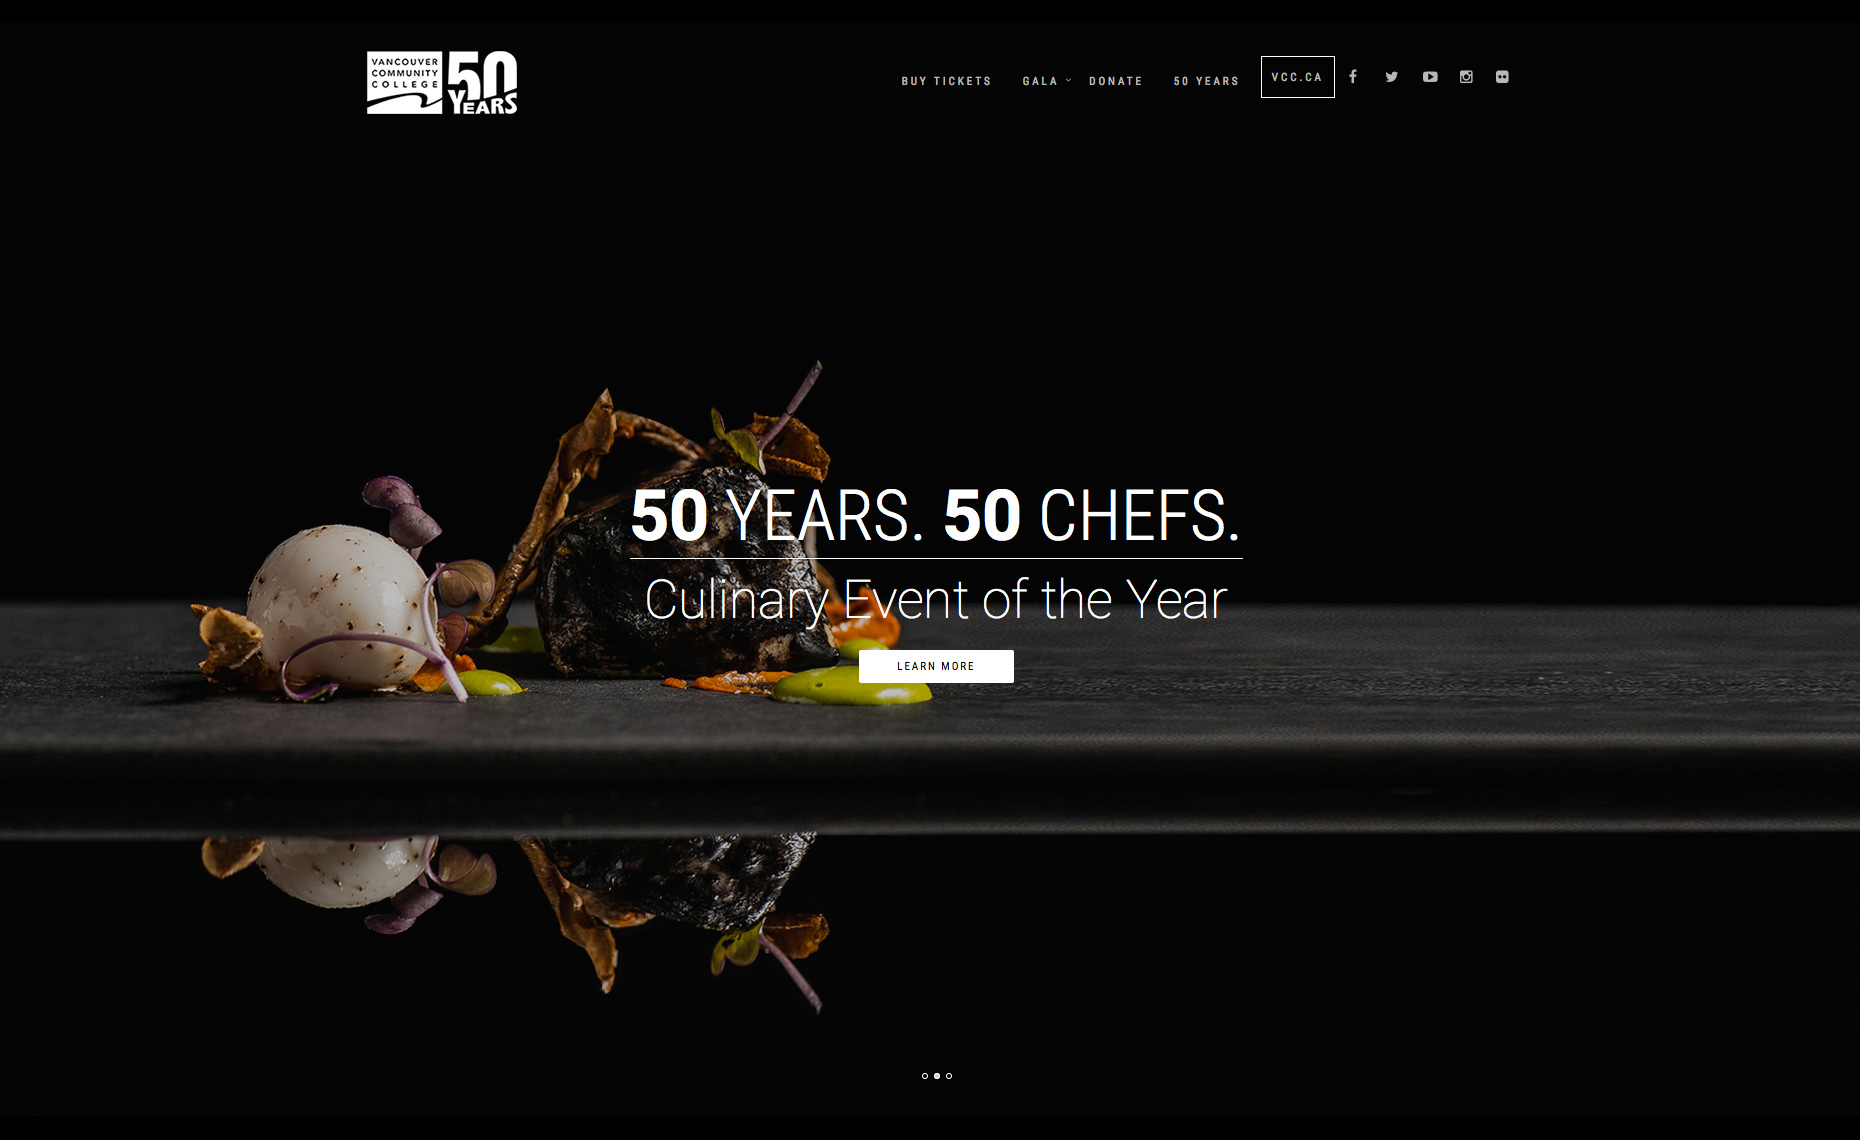 VCC-campaign-50years50chefs